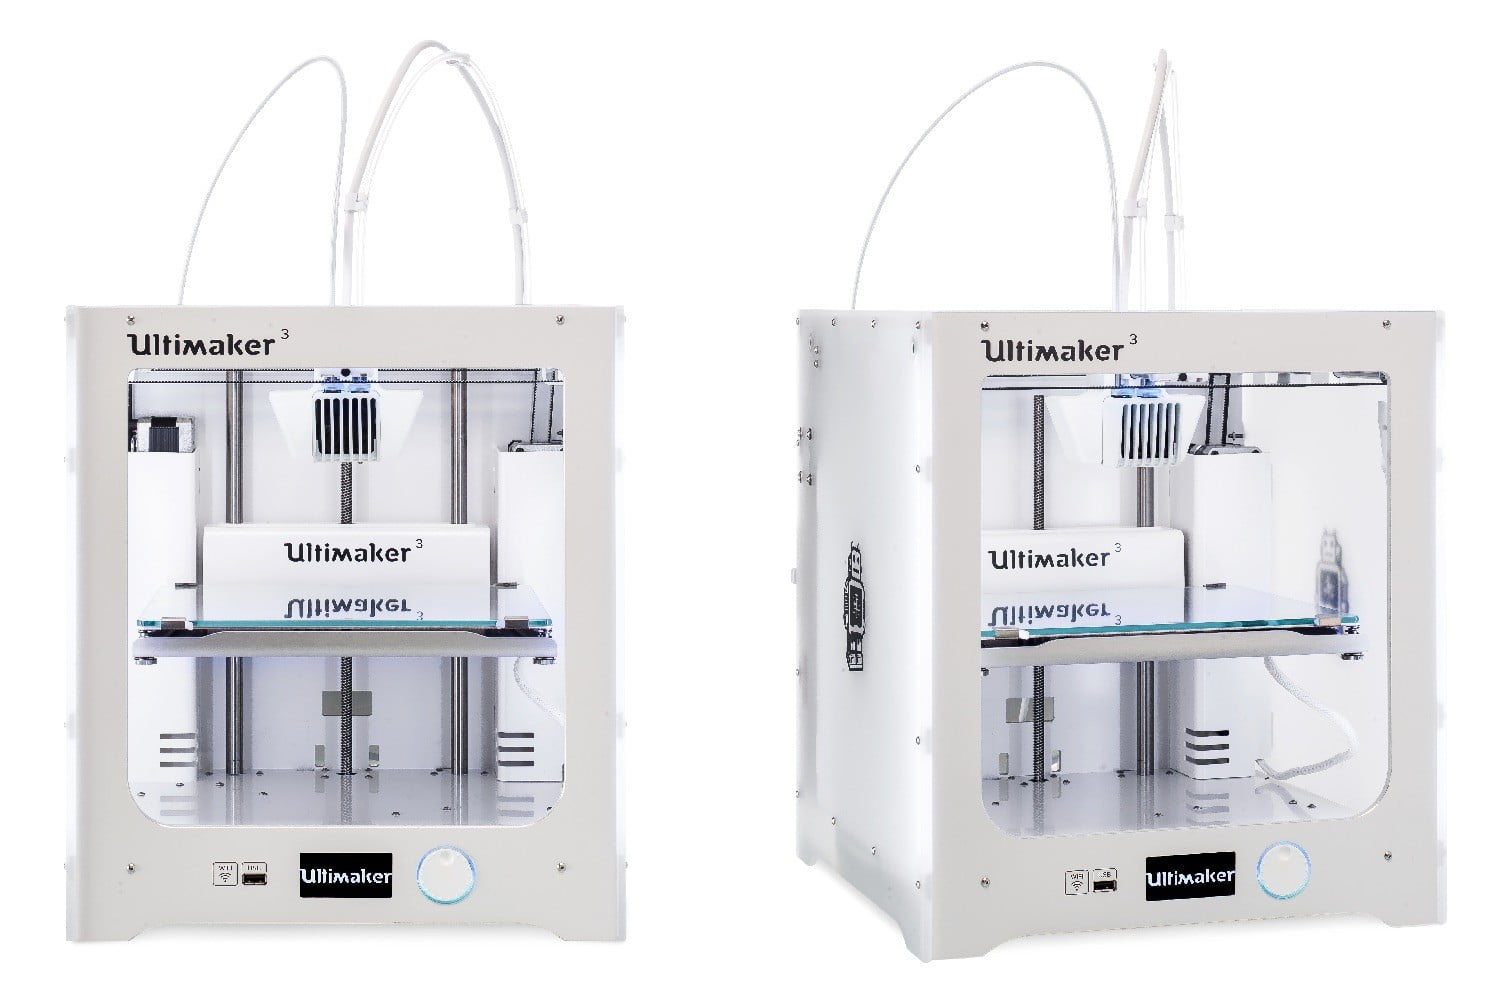 Ultimaker 3 is a 3D Printer that Can Print Two Things at Once ... on hvac diagrams, switch diagrams, motor diagrams, engine diagrams, internet of things diagrams, gmc fuse box diagrams, smart car diagrams, electrical diagrams, lighting diagrams, pinout diagrams, transformer diagrams, friendship bracelet diagrams, series and parallel circuits diagrams, electronic circuit diagrams, sincgars radio configurations diagrams, troubleshooting diagrams, honda motorcycle repair diagrams, led circuit diagrams, battery diagrams,